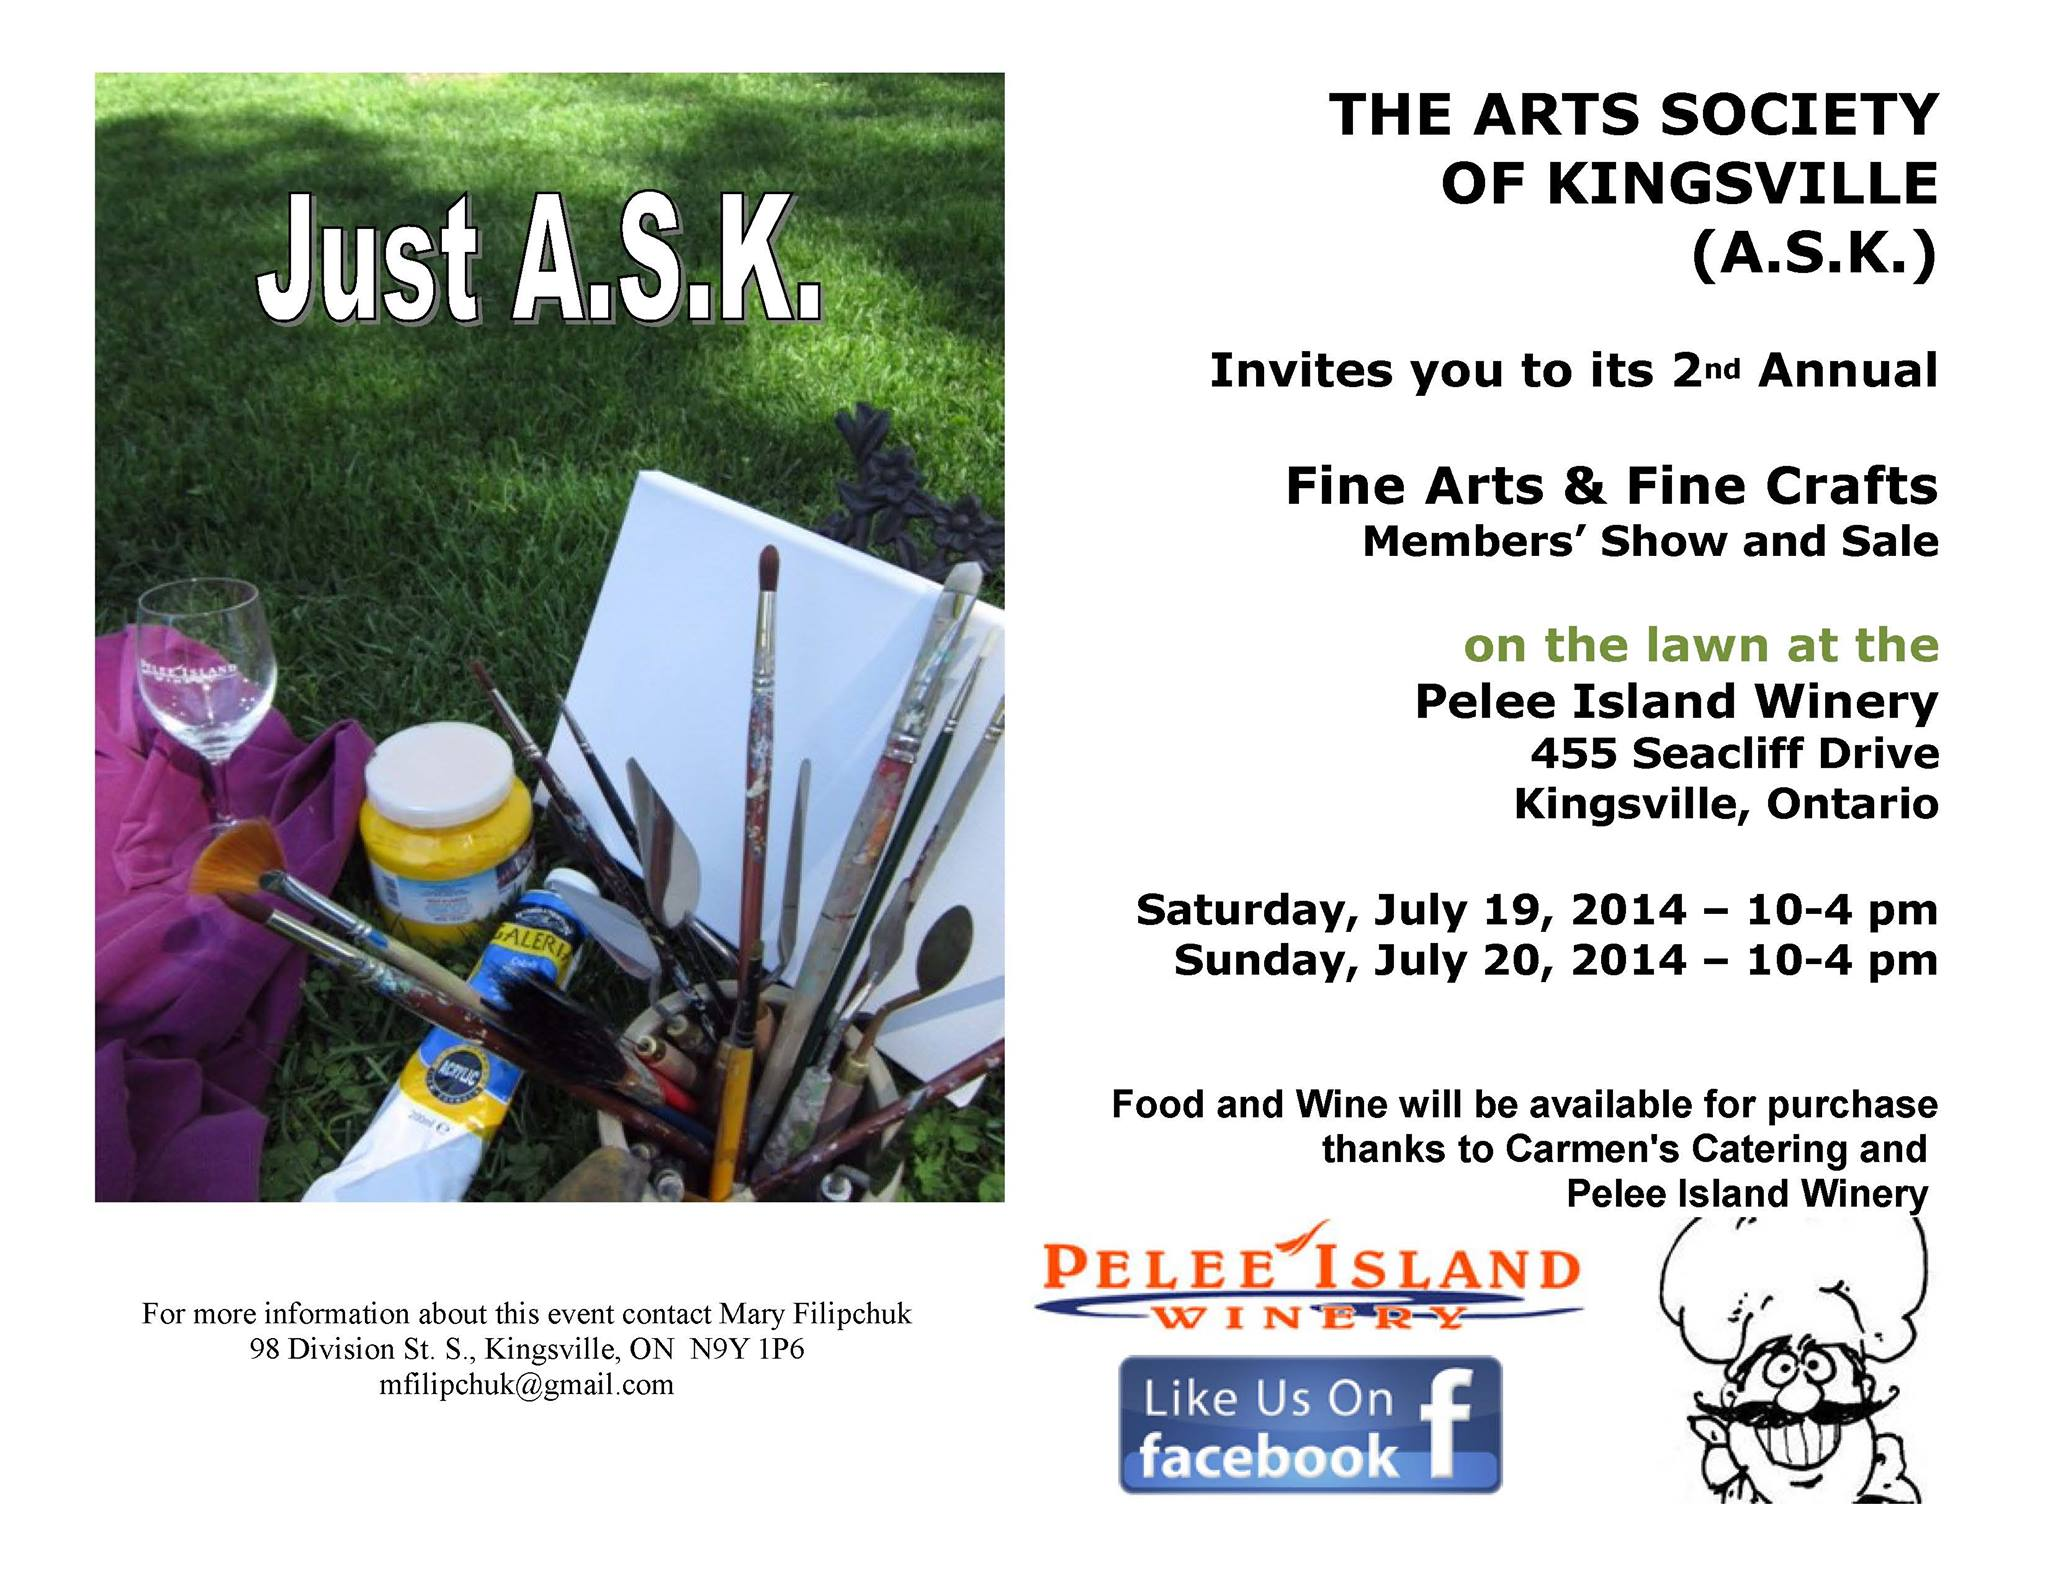 Poster for Arts Society of Kingsville Fine Arts & Fine Crafts Show & Sale